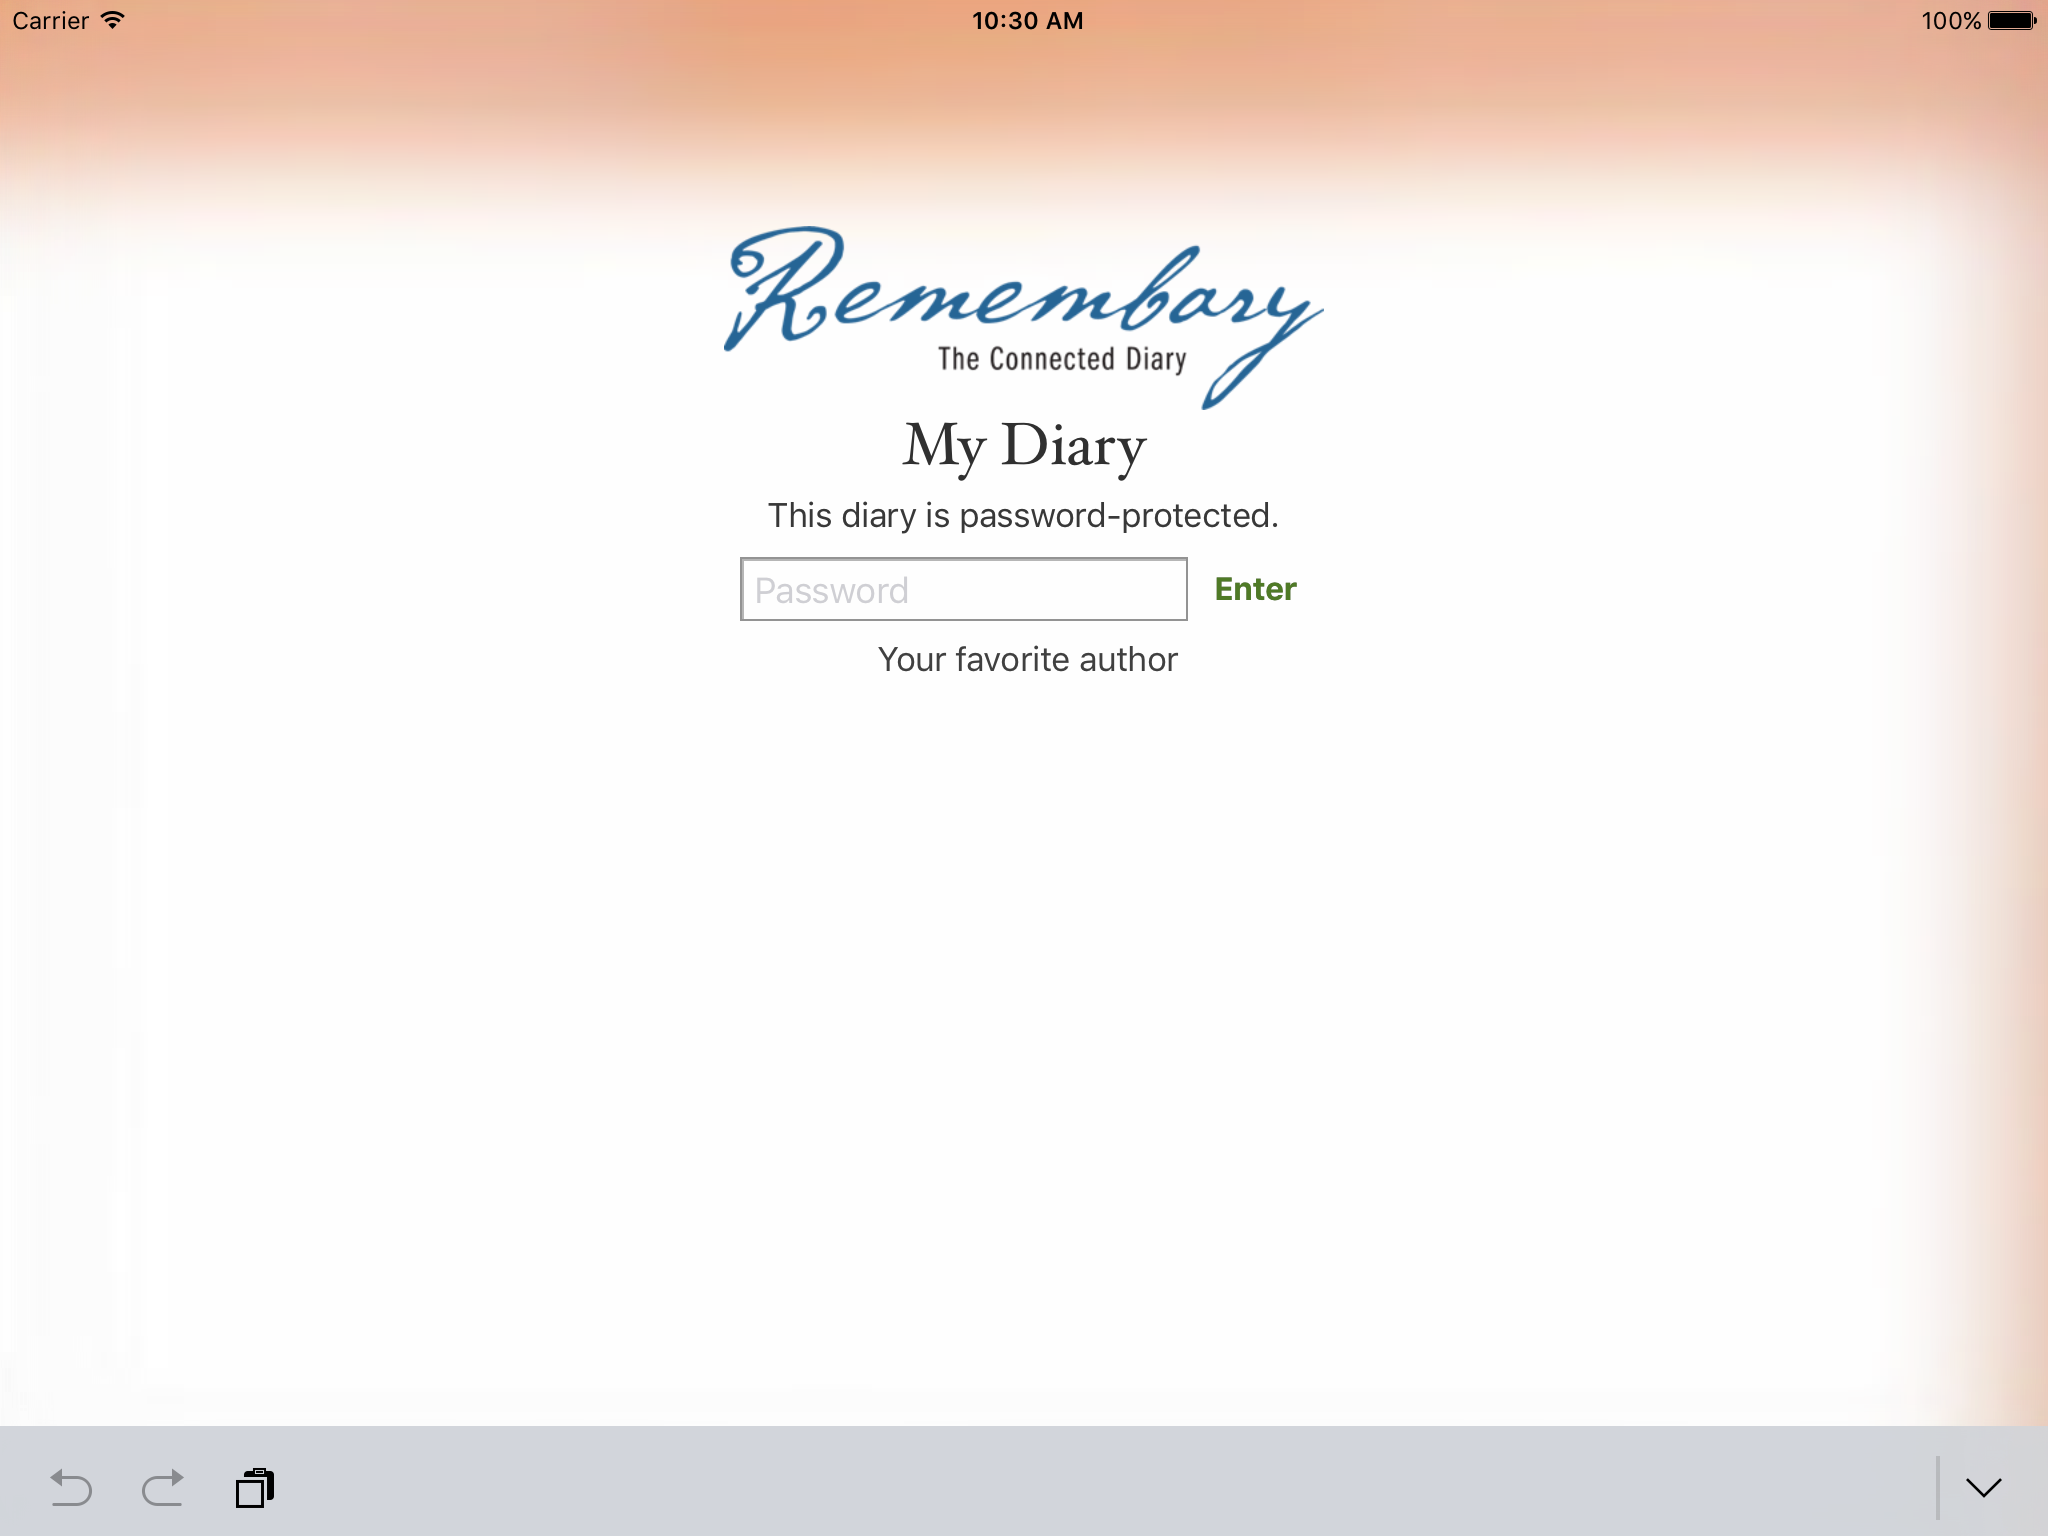 Remembary 3's new translucent cover page, showing a password hint.